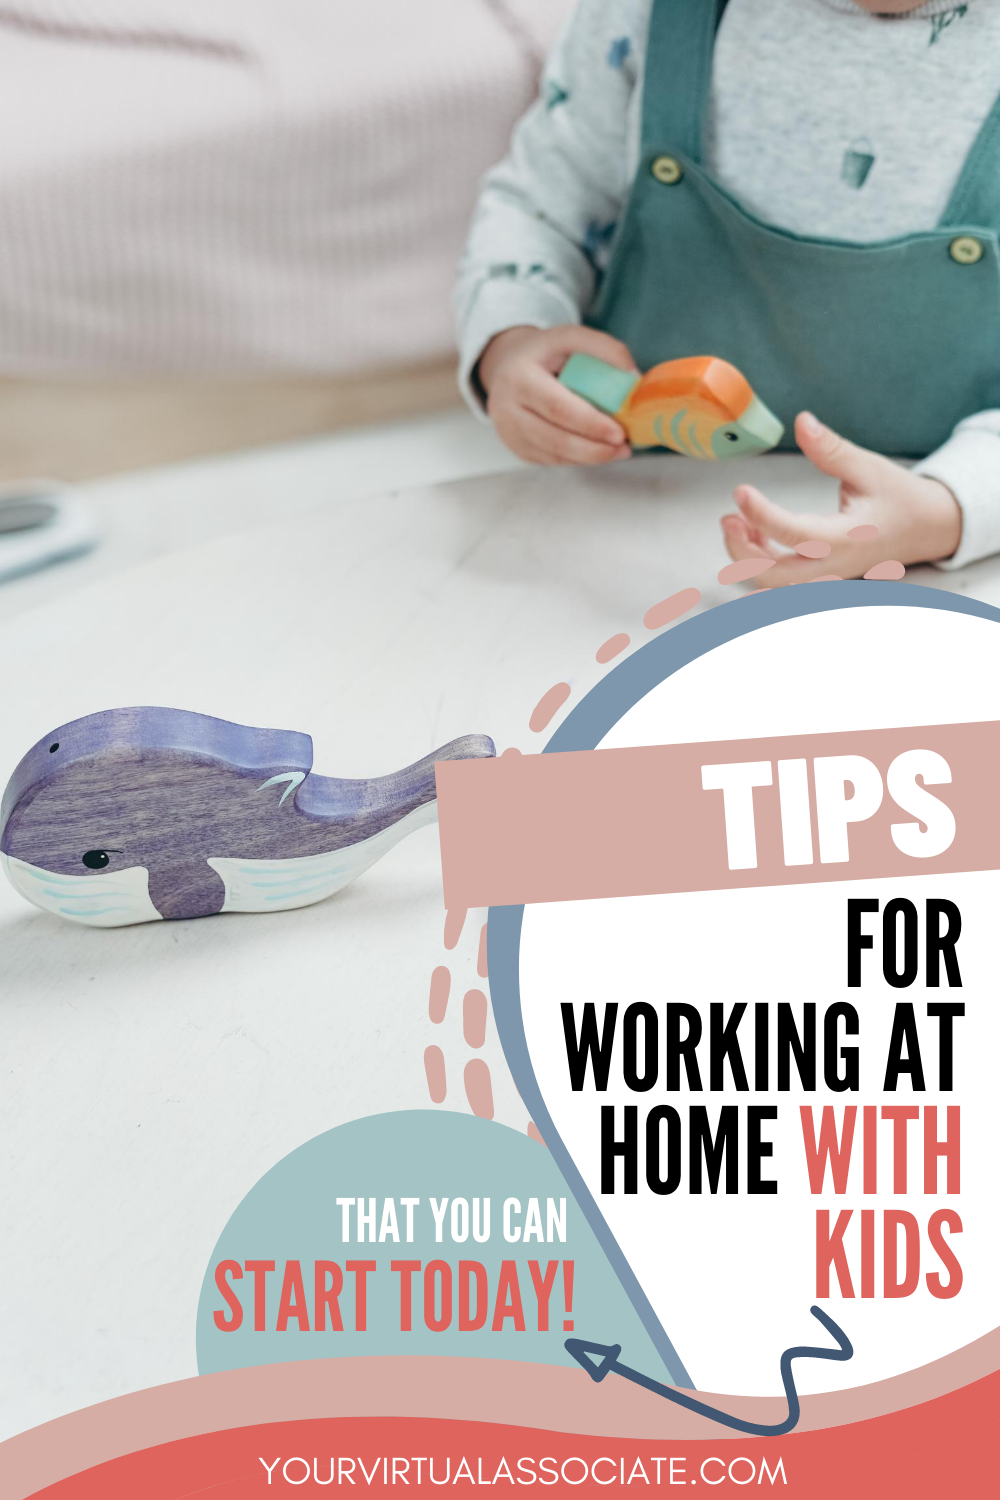 Tips for Working at Home with Kids - Pin